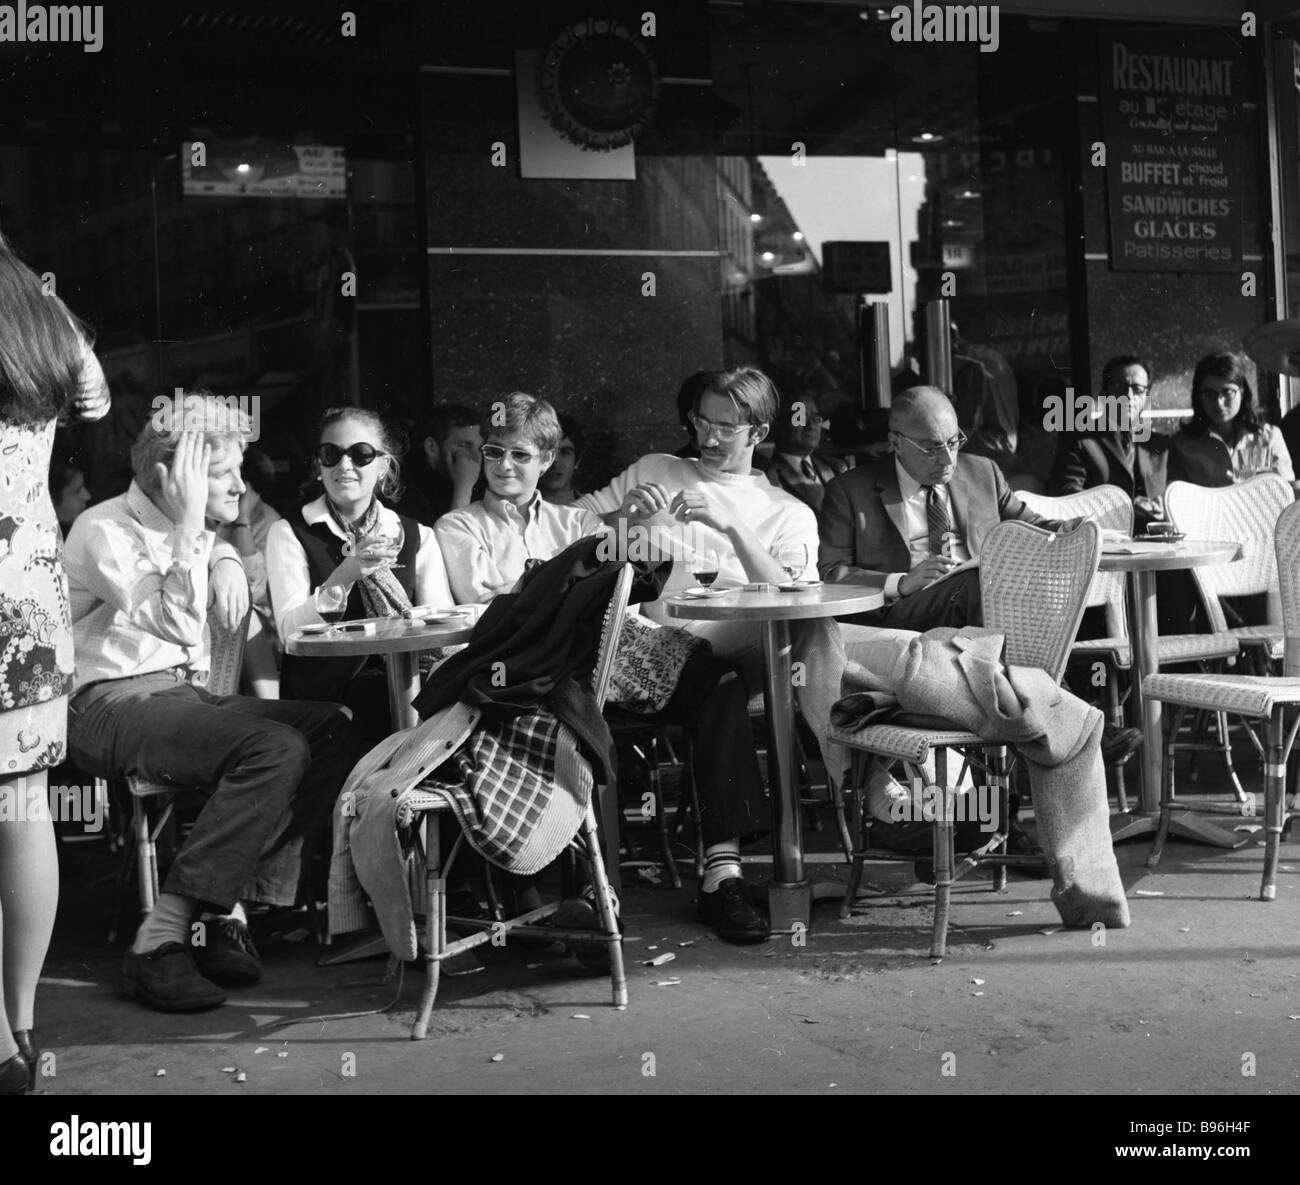 Parisians in a street cafe Quartier Latin - Stock Image